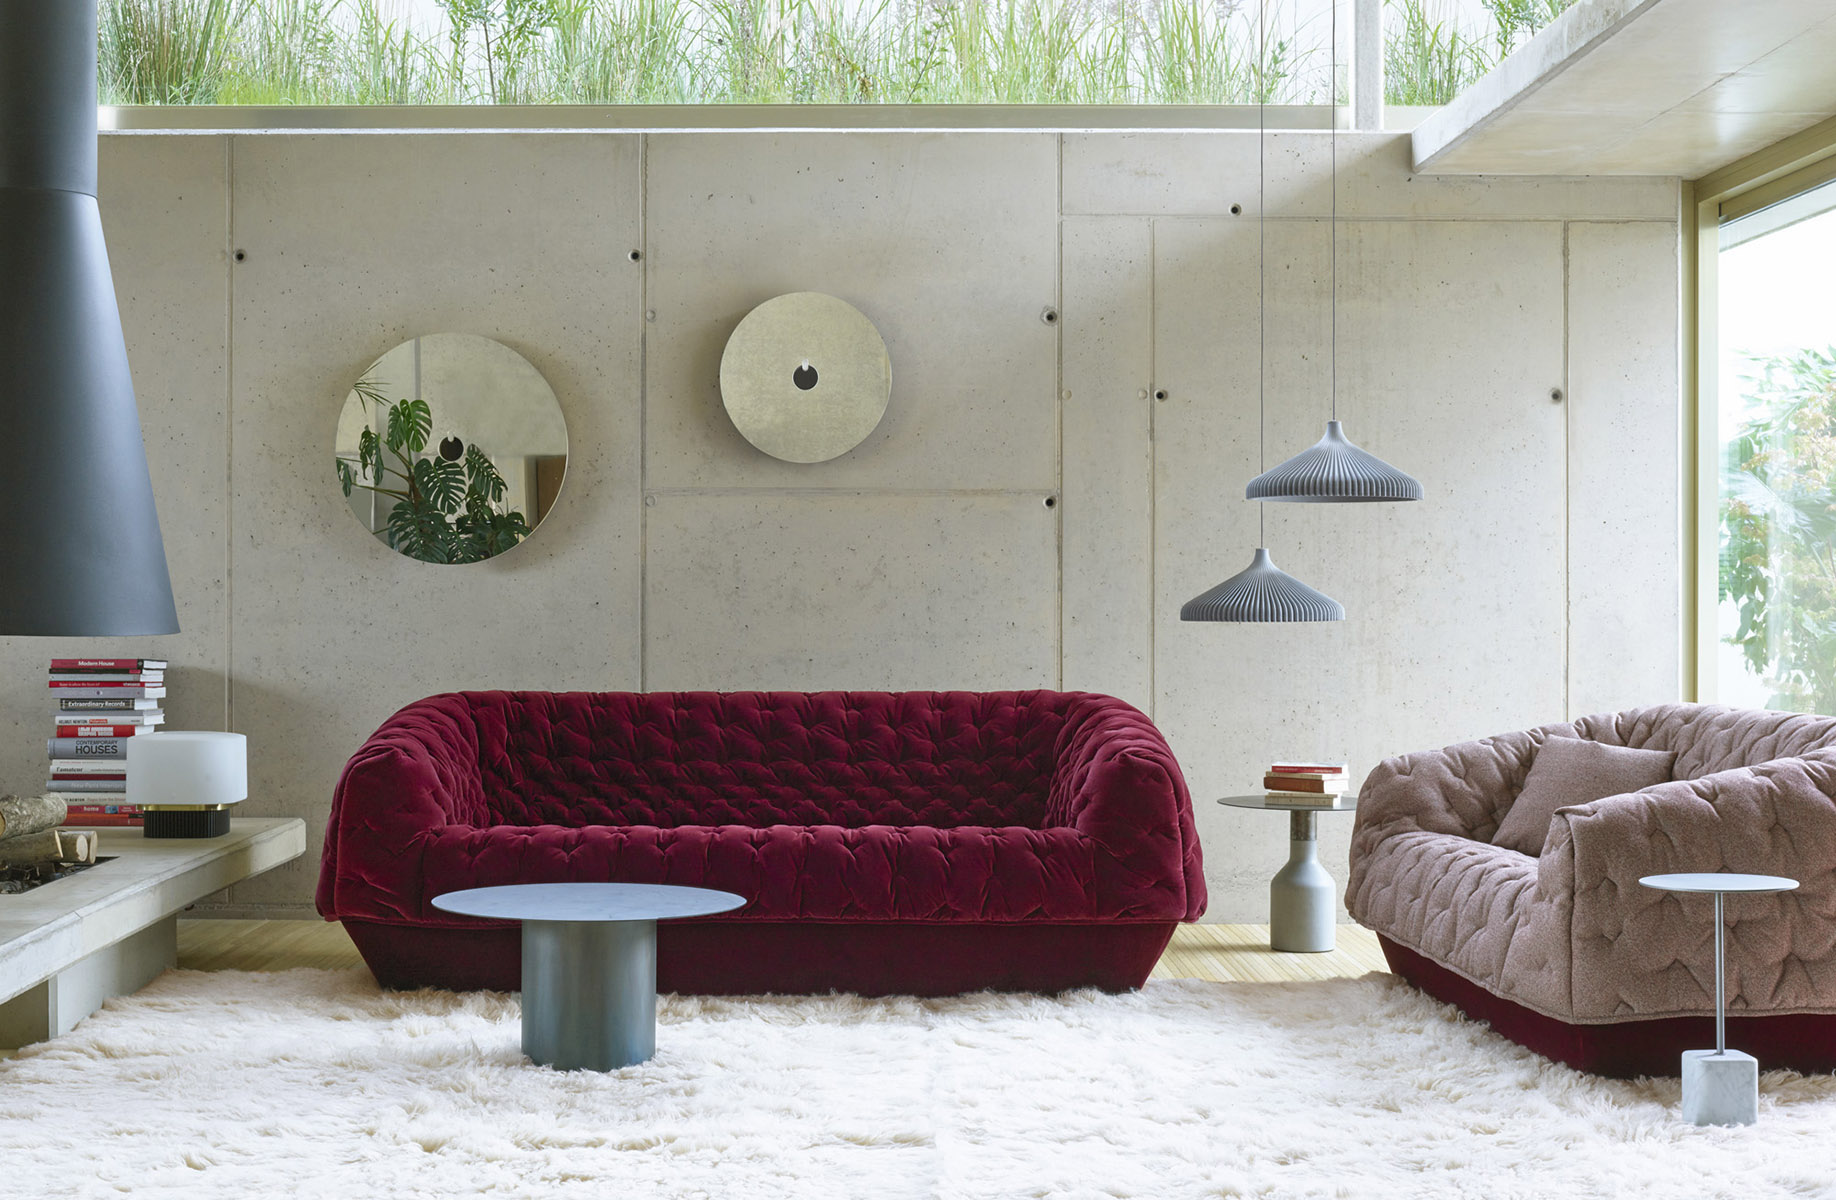 lemoine_int106